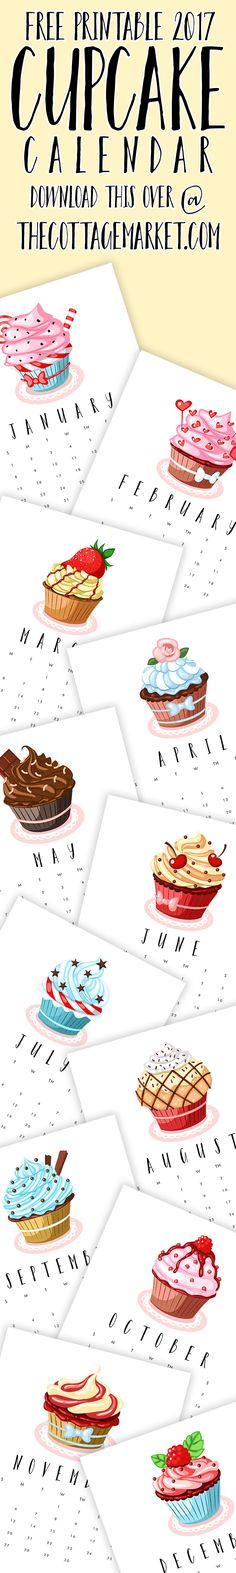 Free Printable 2017 Cupcake Calendar...Come and Celebrate Baking Week!